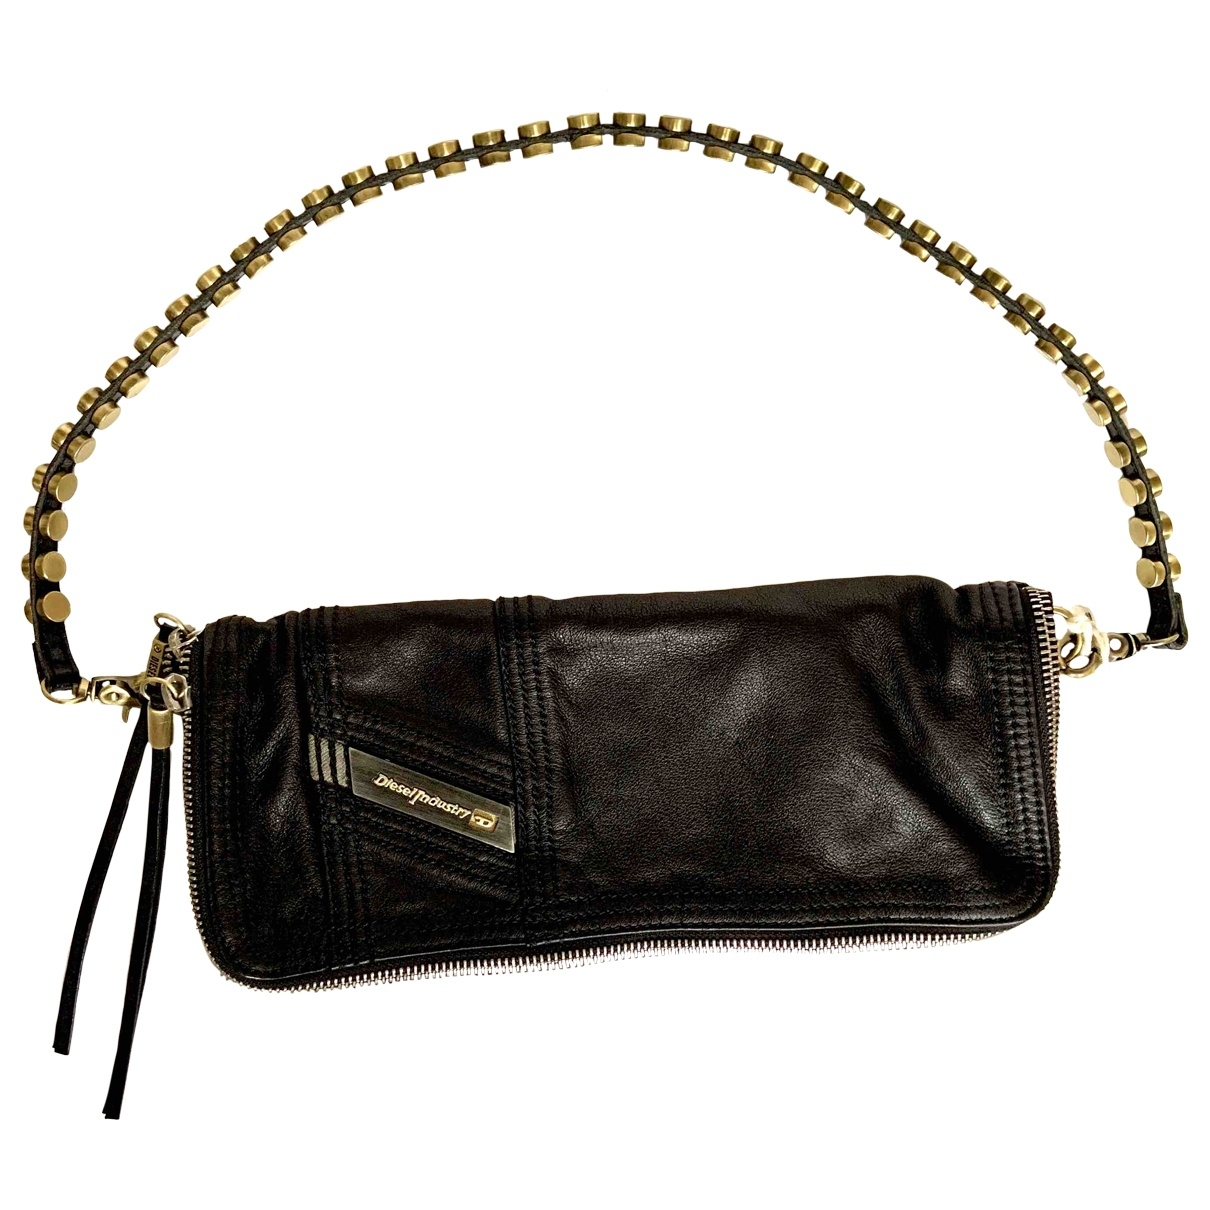 Diesel \N Black Leather Clutch bag for Women \N